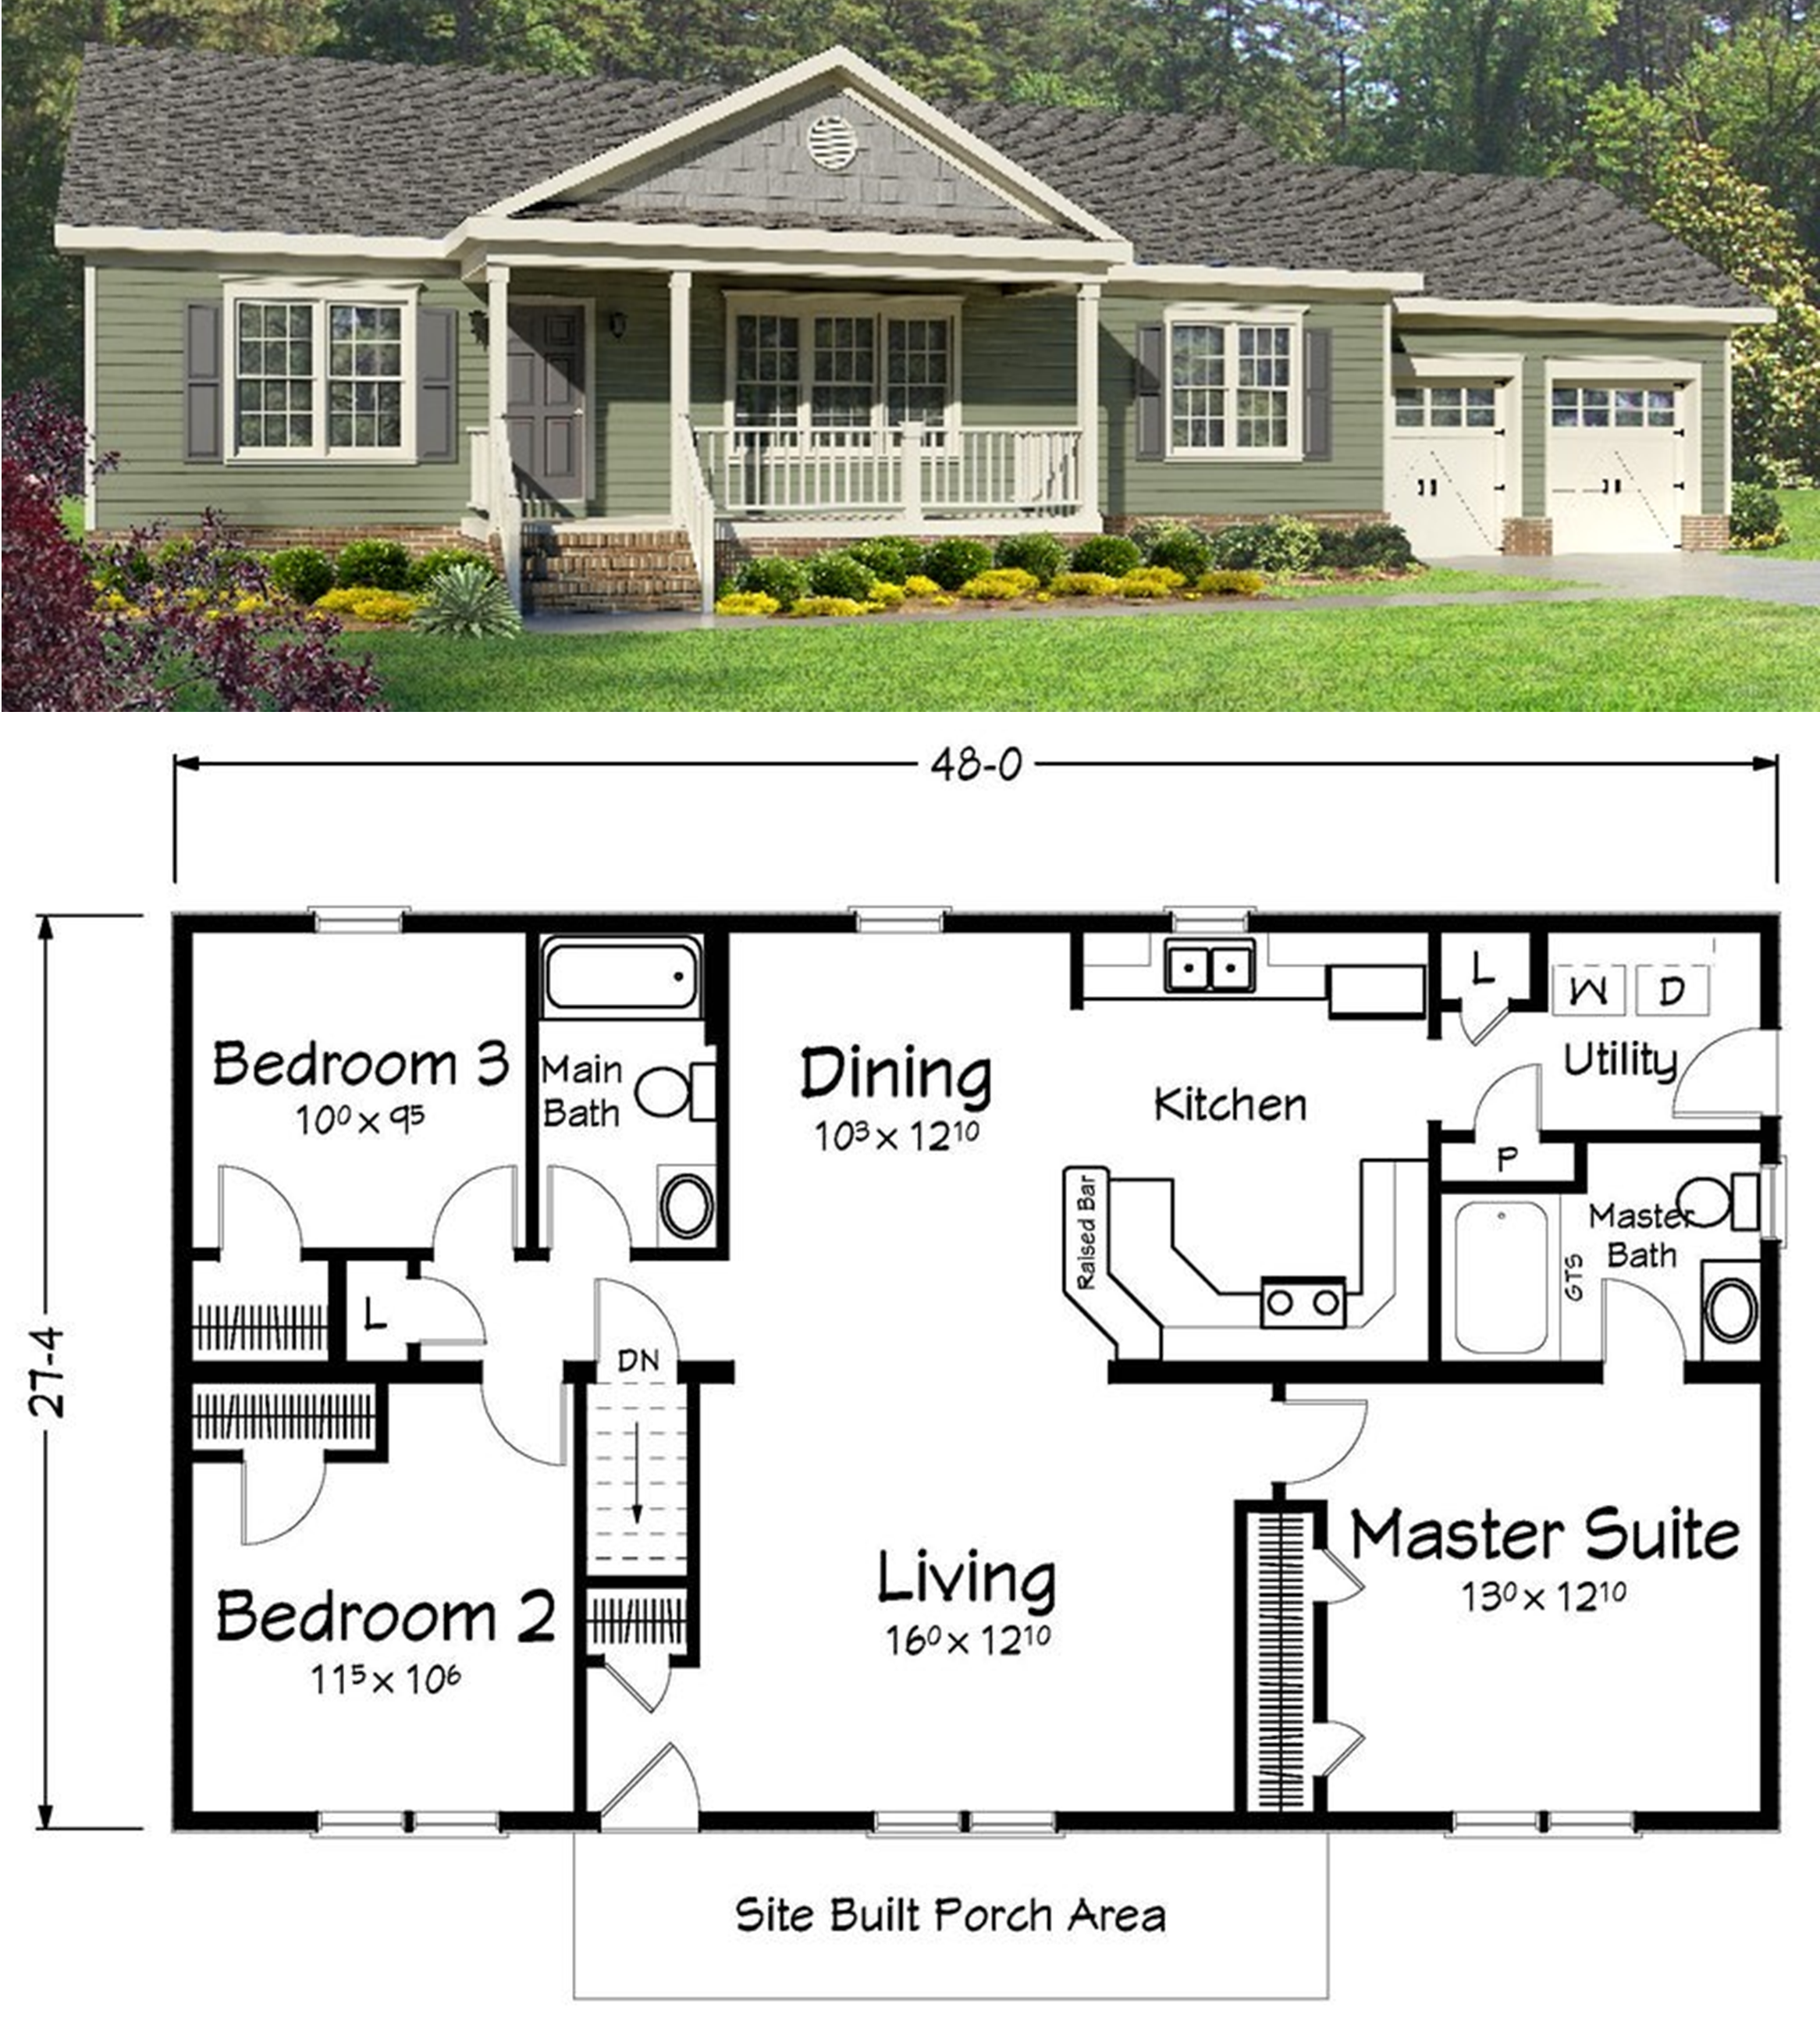 country ranch house plans, ranch house construction, ranch house extensions, ranch house plans awesome, 4-bedroom ranch house plans, ranch house builders, modern ranch house plans, ranch contemporary house plans, ranch house garages, ranch house awnings, ranch house plans with 2 master bedrooms, a-frame building plans, ranch house fireplaces, houses ranch style house plans, ranch house kitchen cabinets, ranch style homes floor plans, ranch house plans with porches, ranch land plans, raised ranch house plans, ranch house plumbing, on ranch house building plans